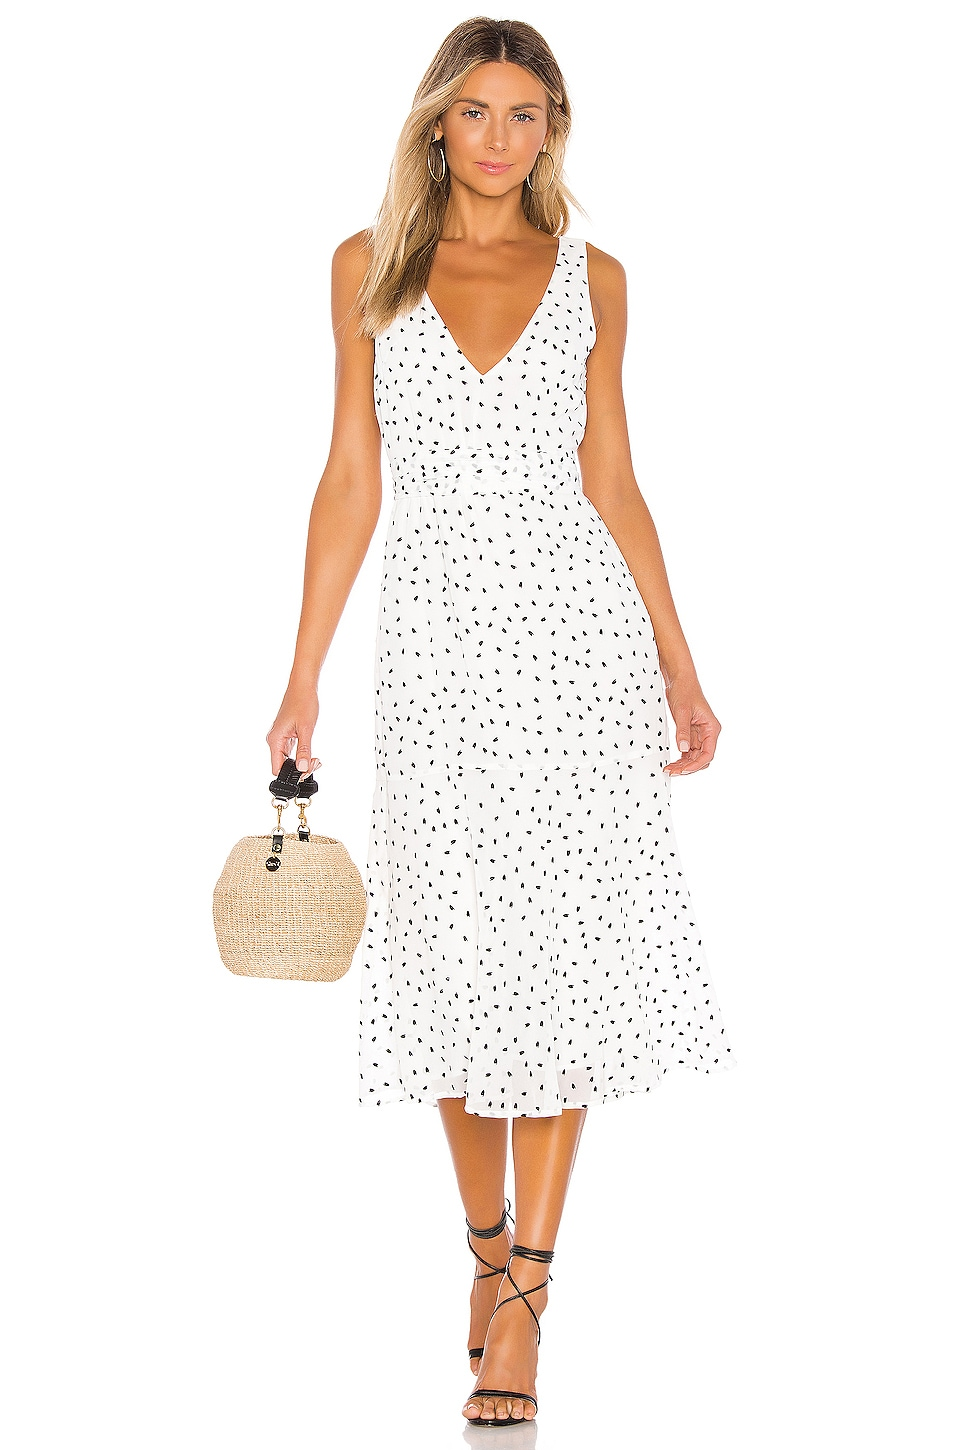 Privacy Please Melinda Midi Dress in Ivory & Black